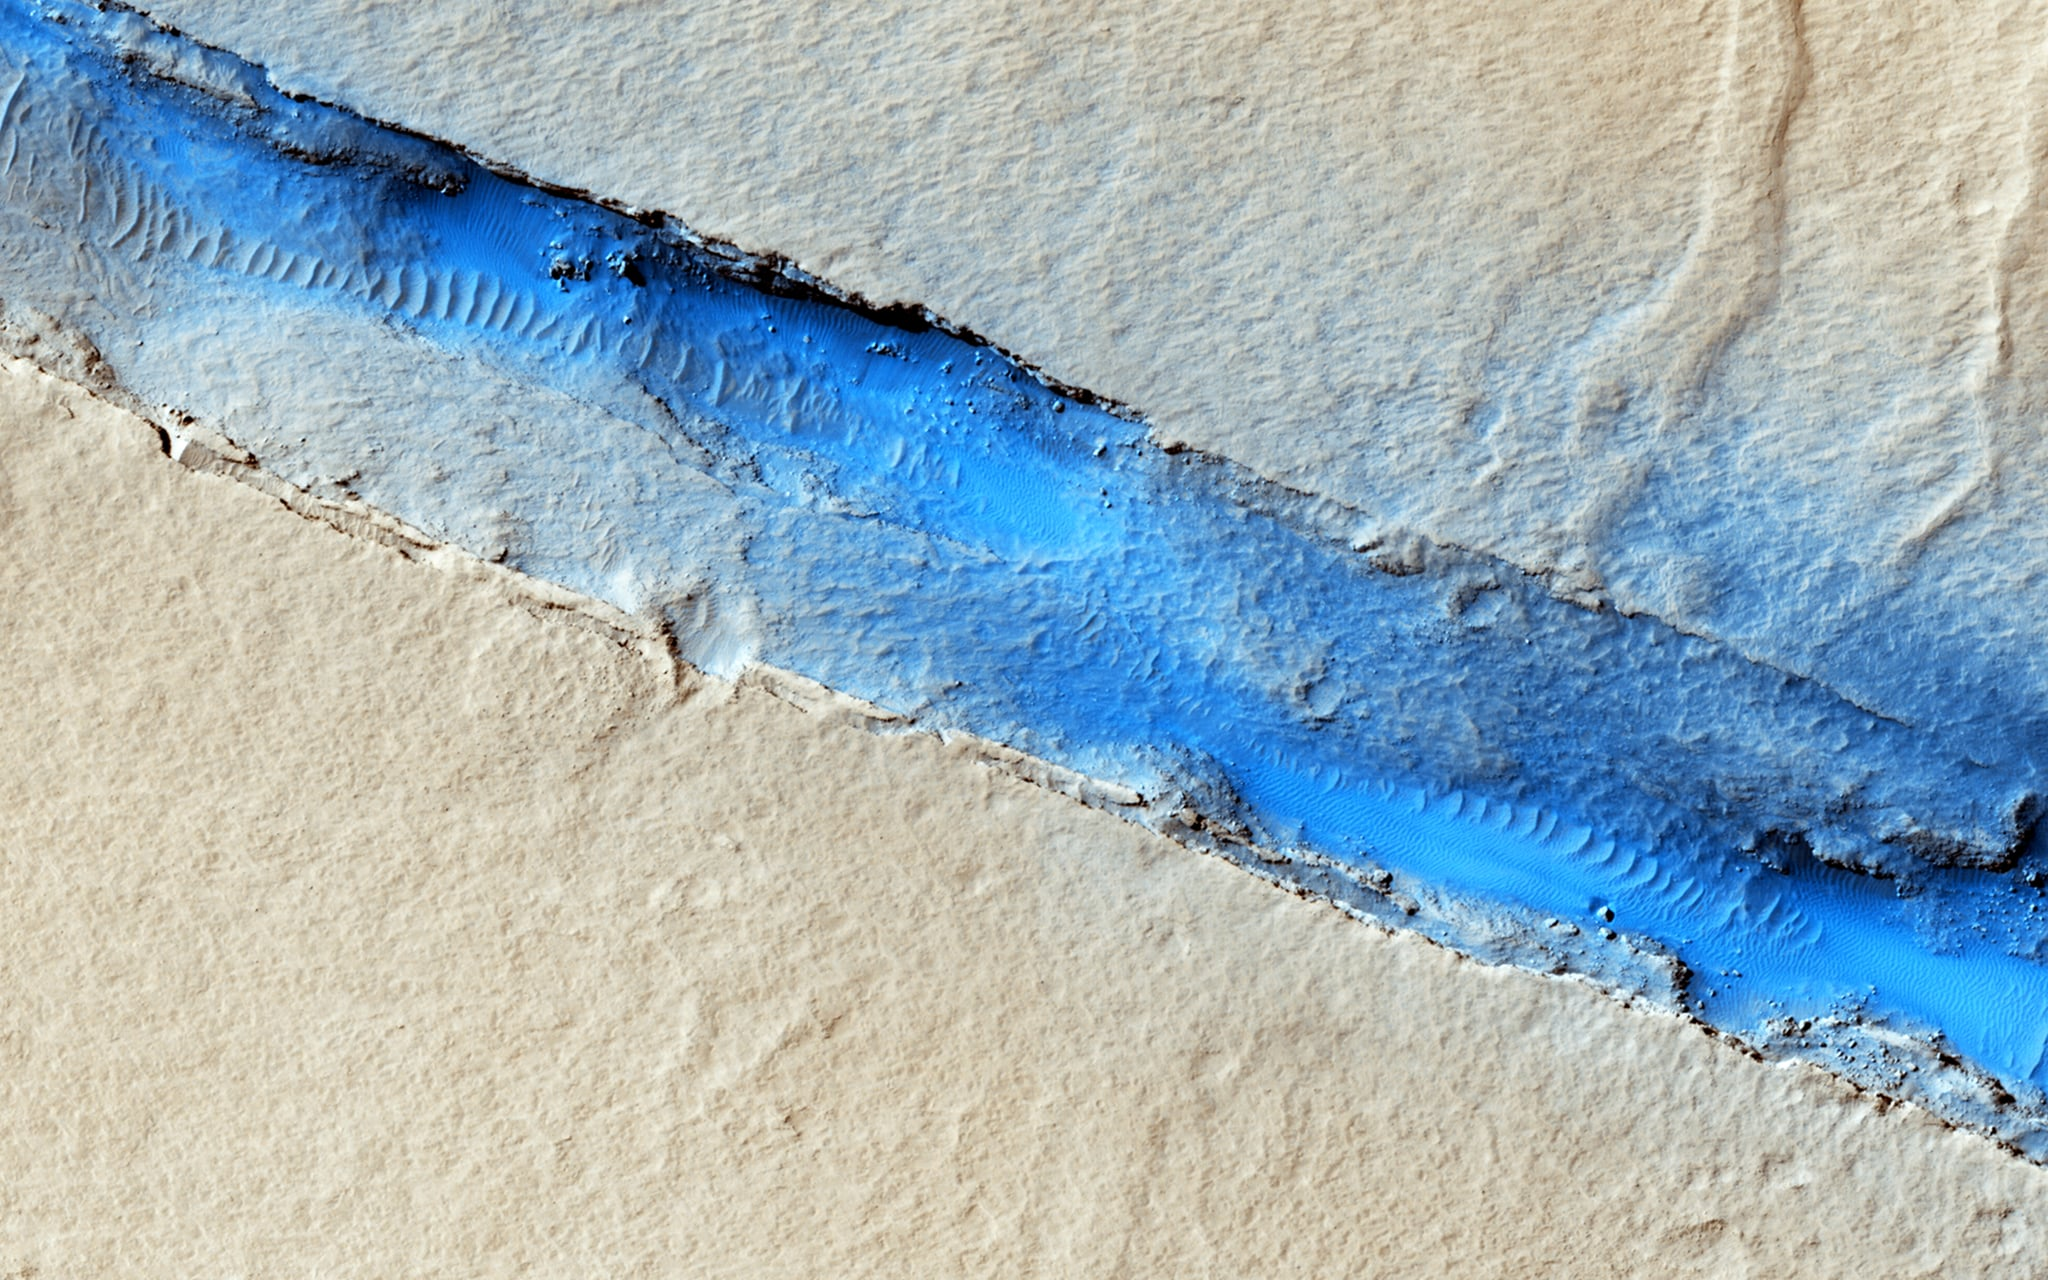 """""""The linearity of the volcanic vent shown in this HiRISE image, in conjunction with evidence of lava flow from the vent, suggests control by combined volcano-tectonic processes."""" Source: NASA/JPL/University of Arizona"""